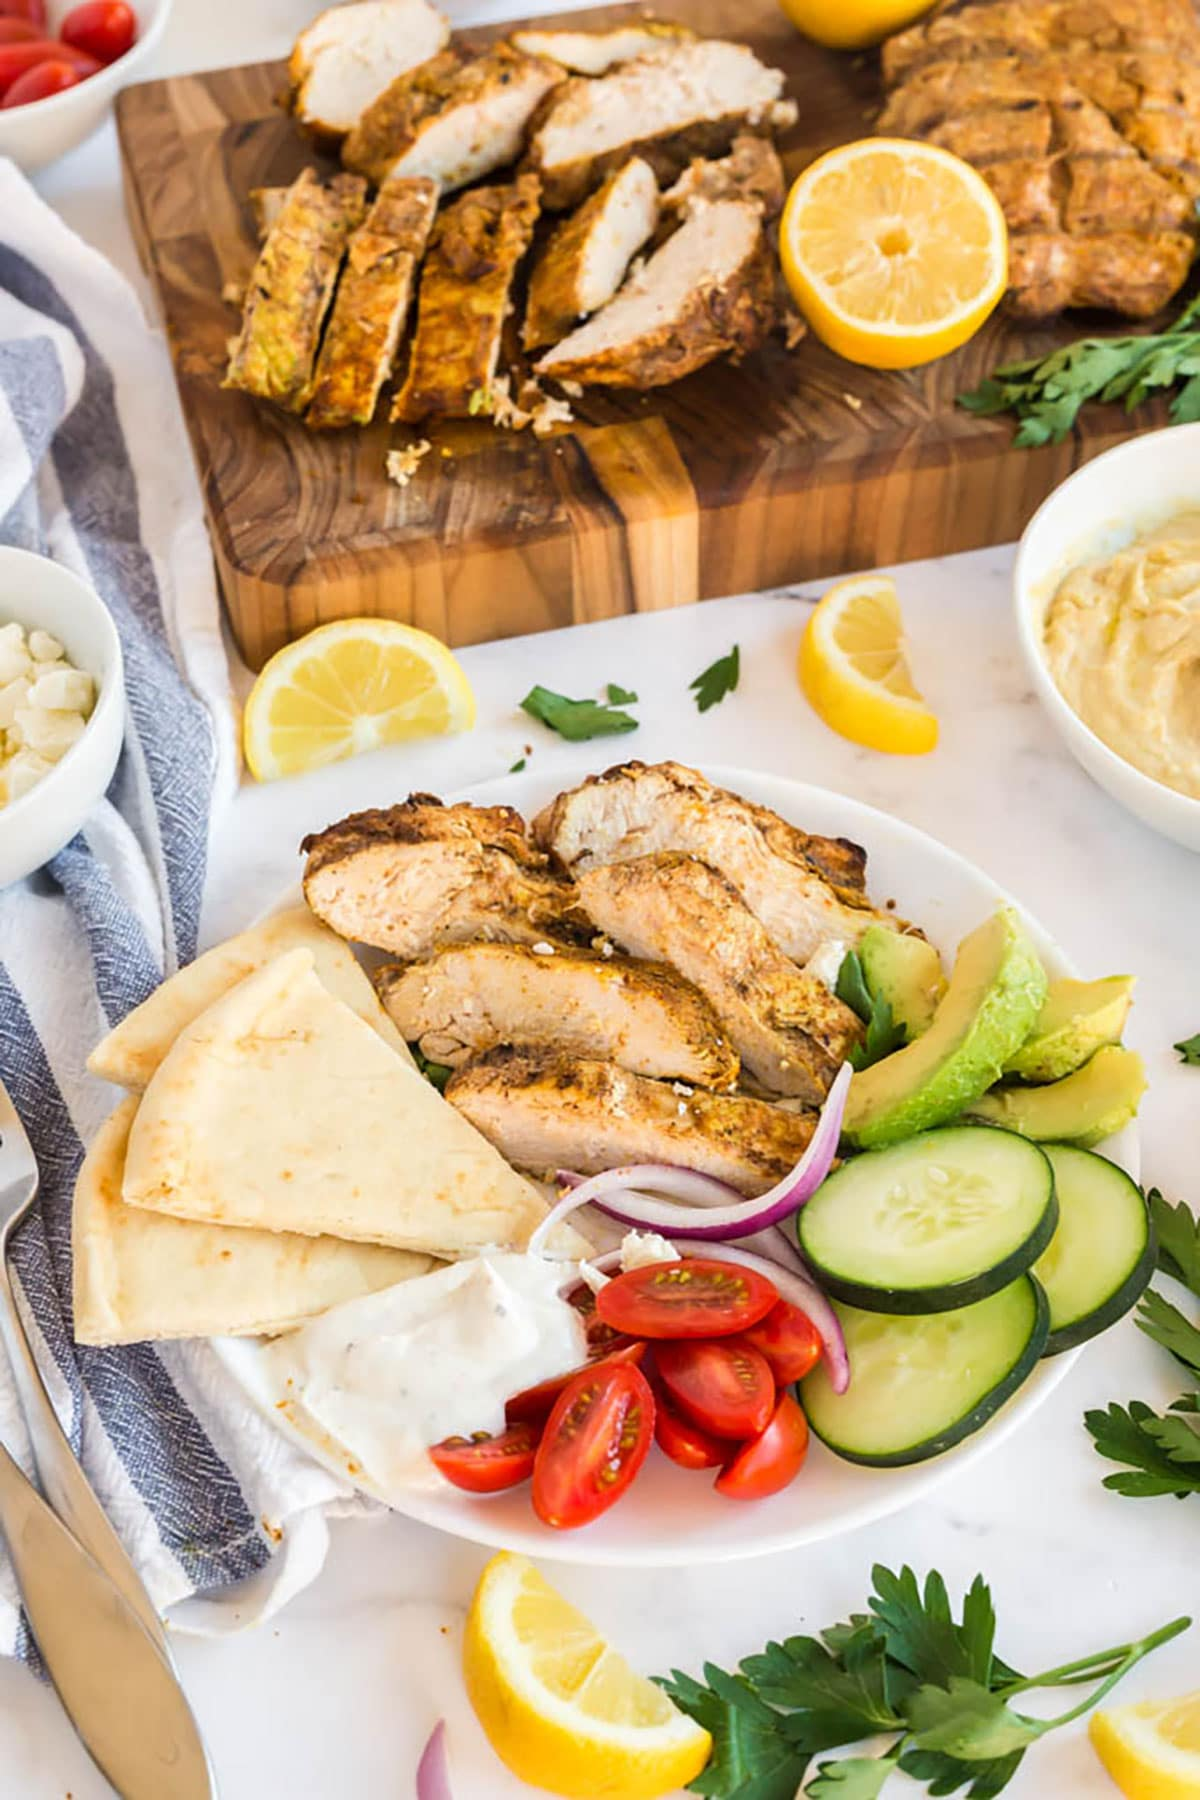 Chicken Shawarma Plate with Yogurt Garlic Sauce, Pita Bread and Fresh Veggies